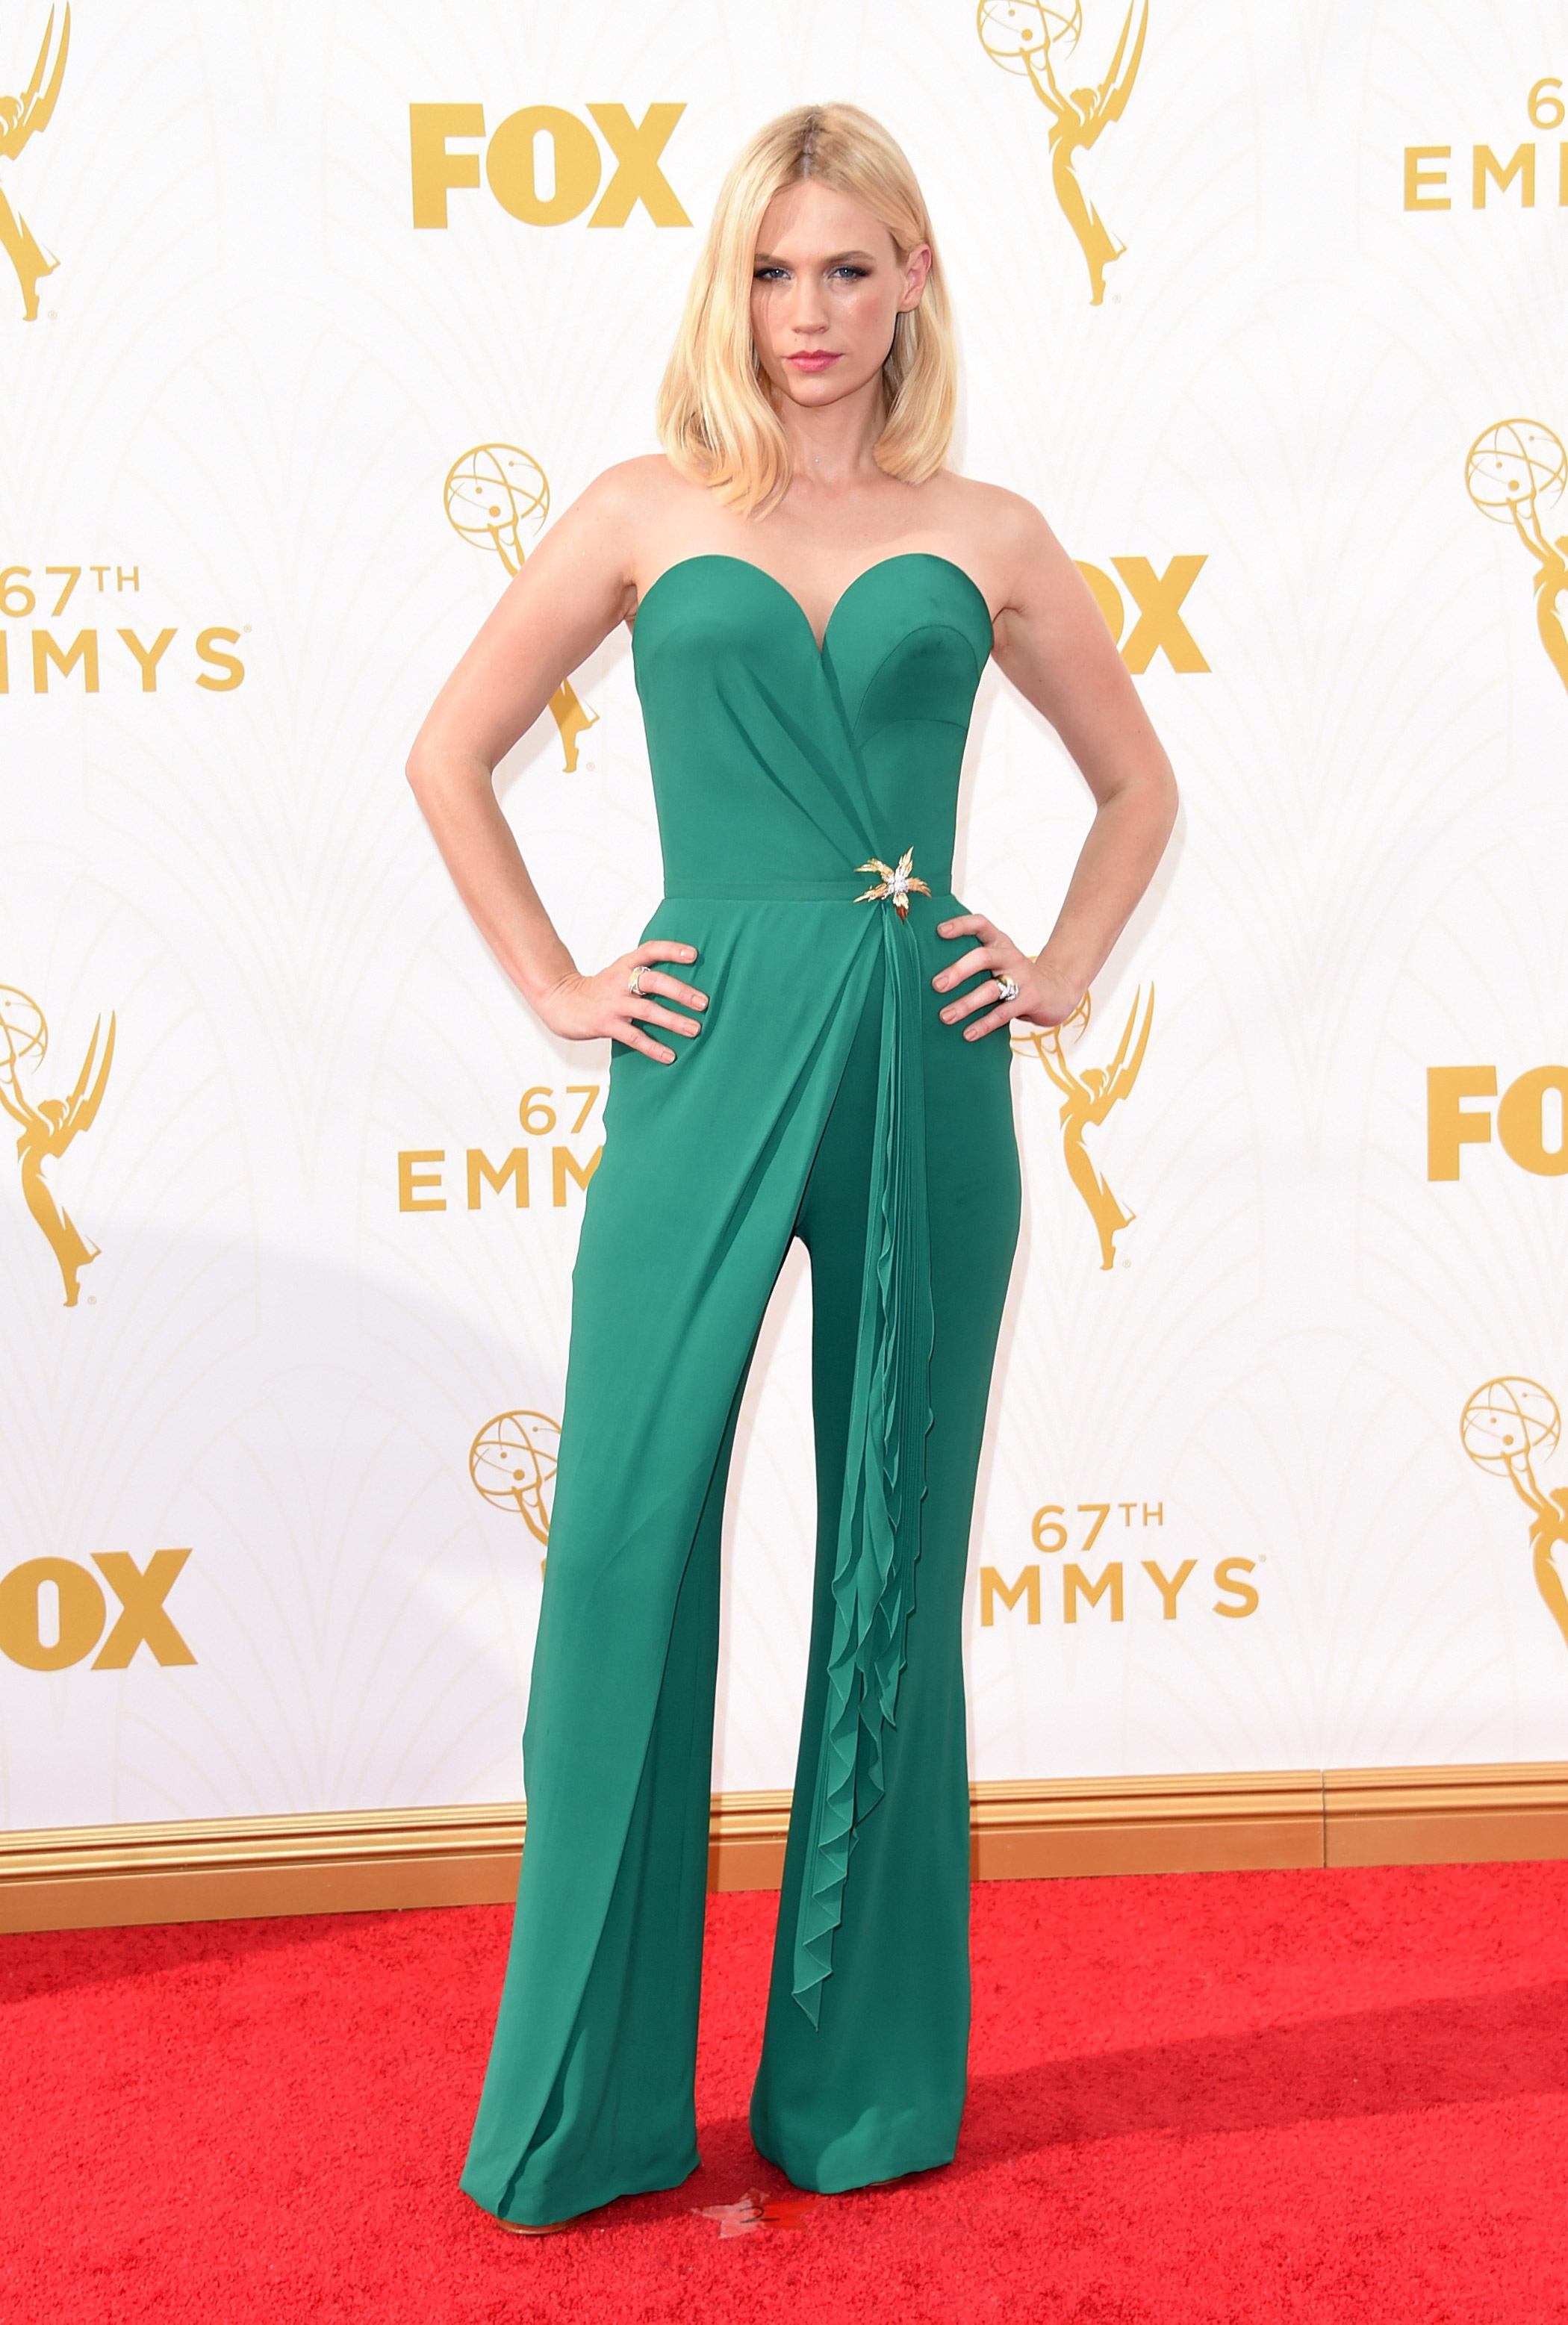 January Jones at the 67th Emmy Award on Sept. 20, 2015 in Los Angeles.